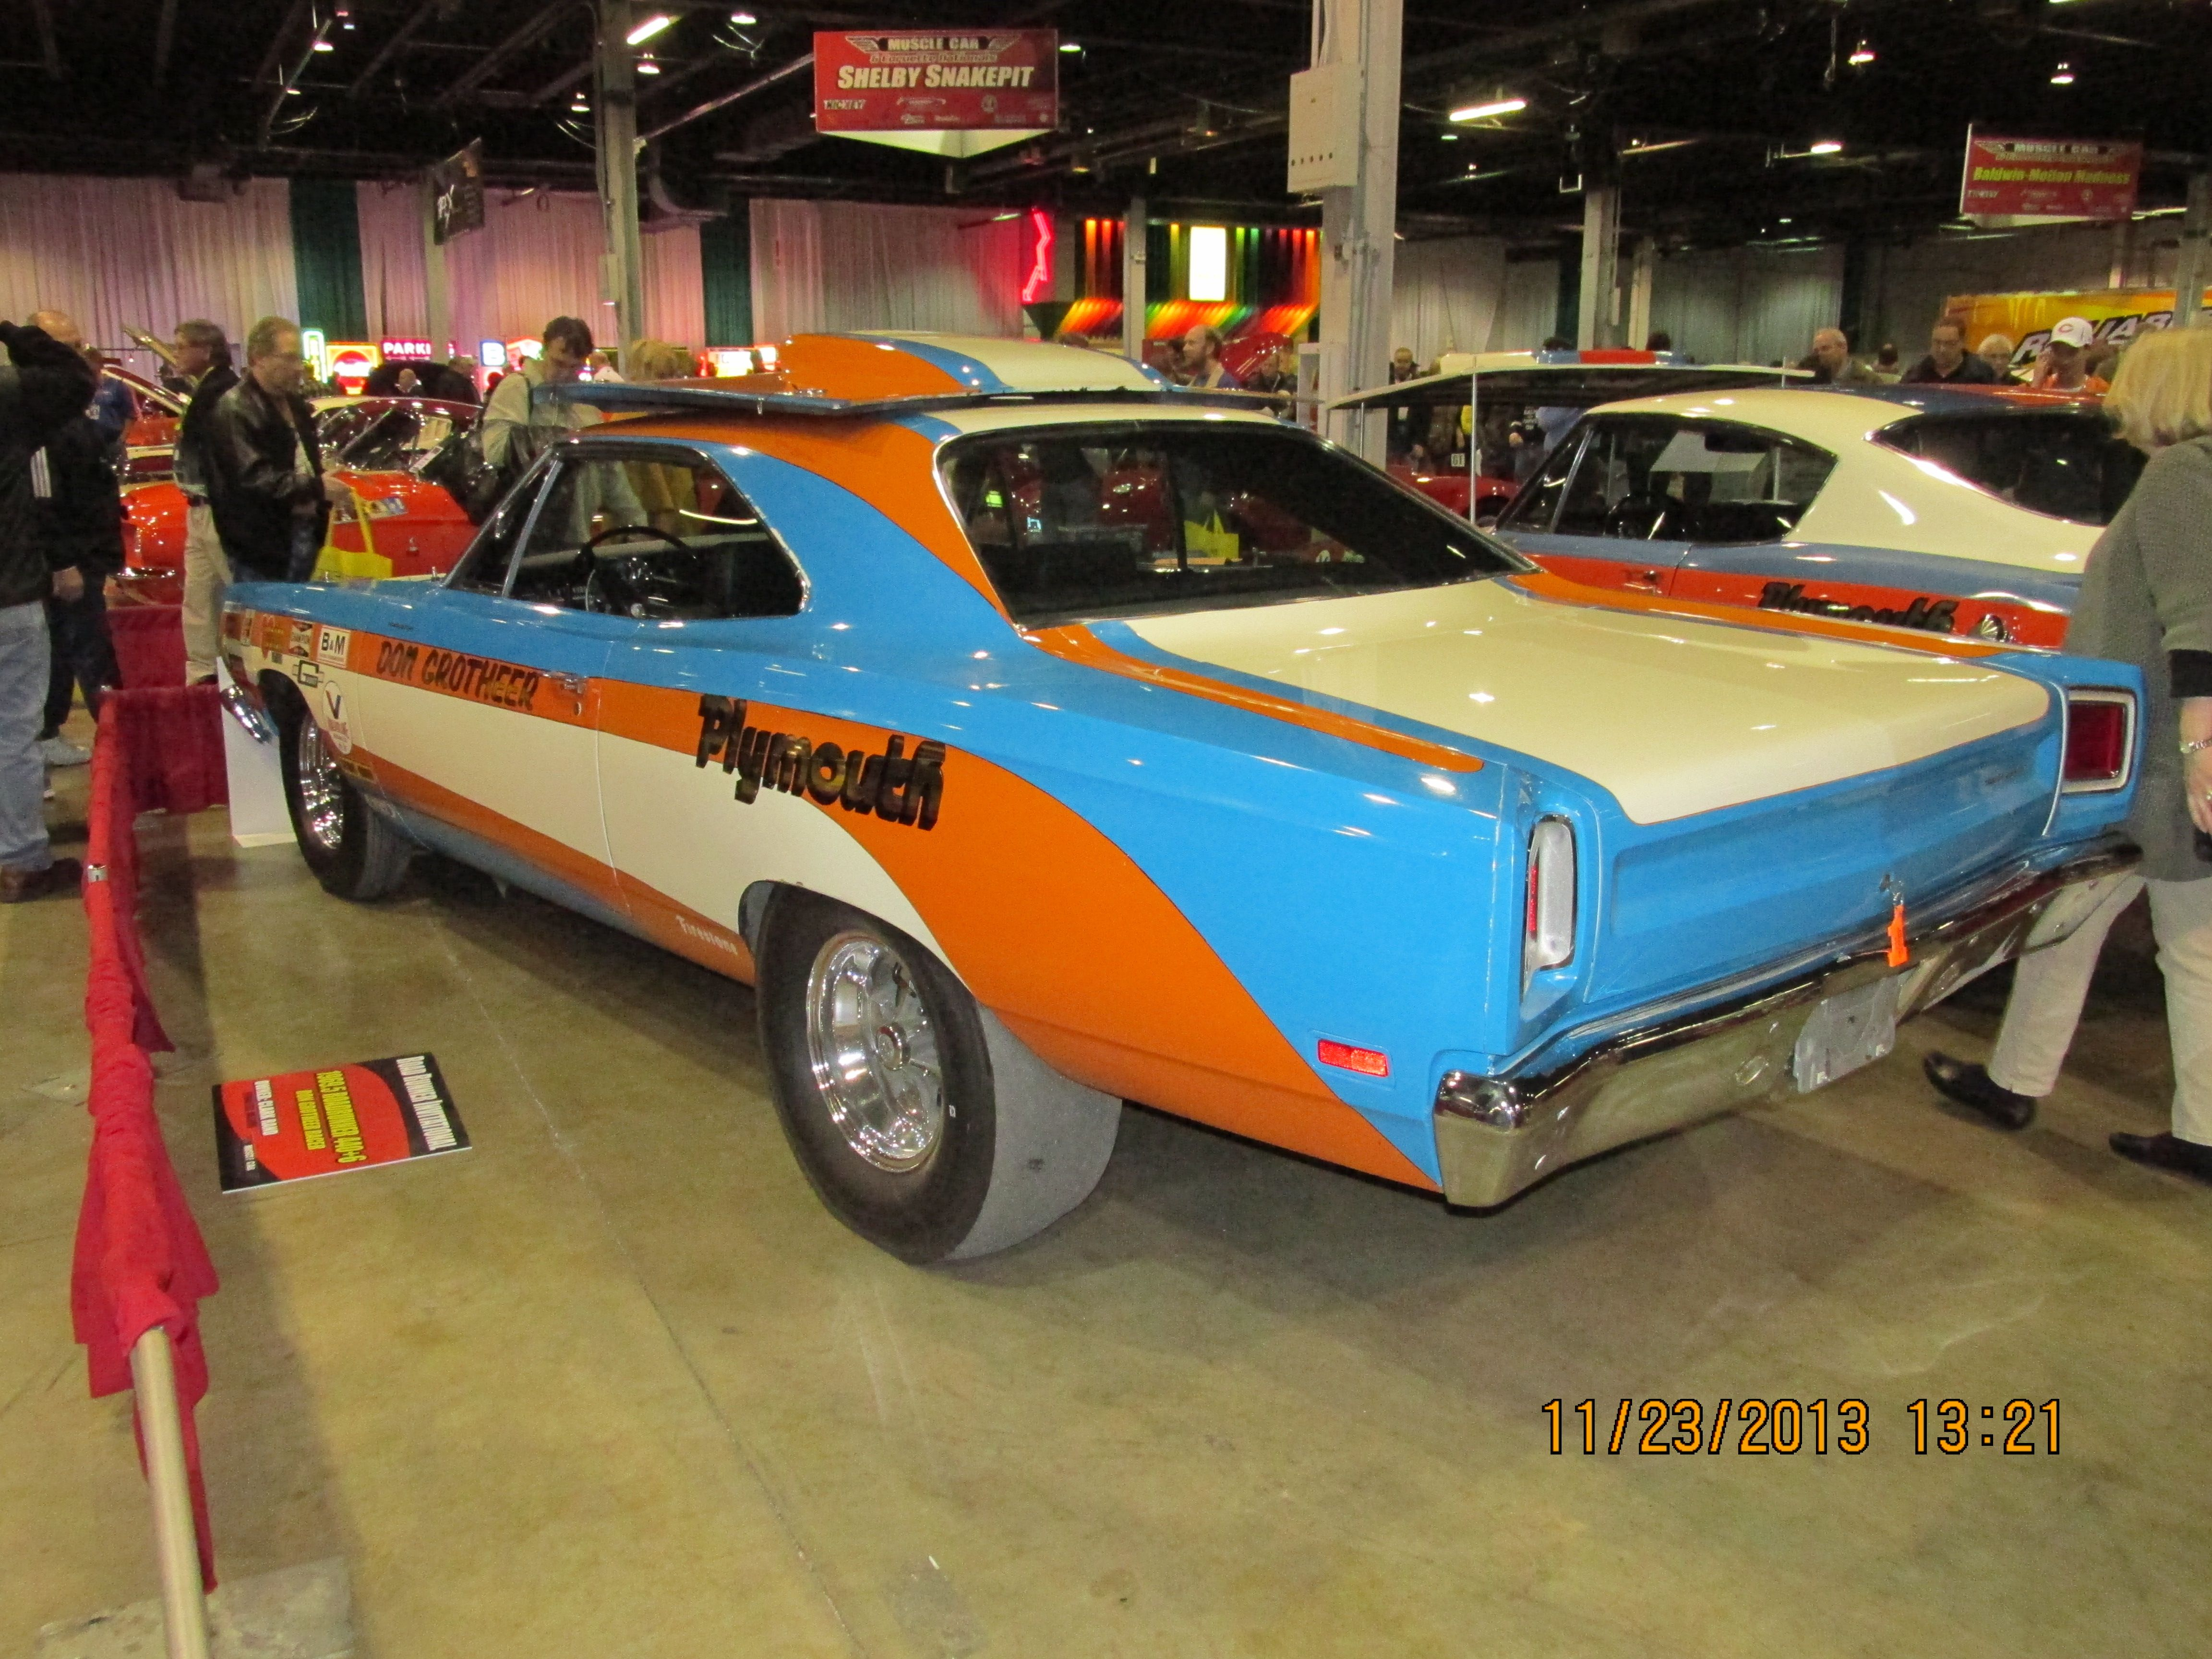 1969 plymouth roadrunner 6 pack car love the paint scheme